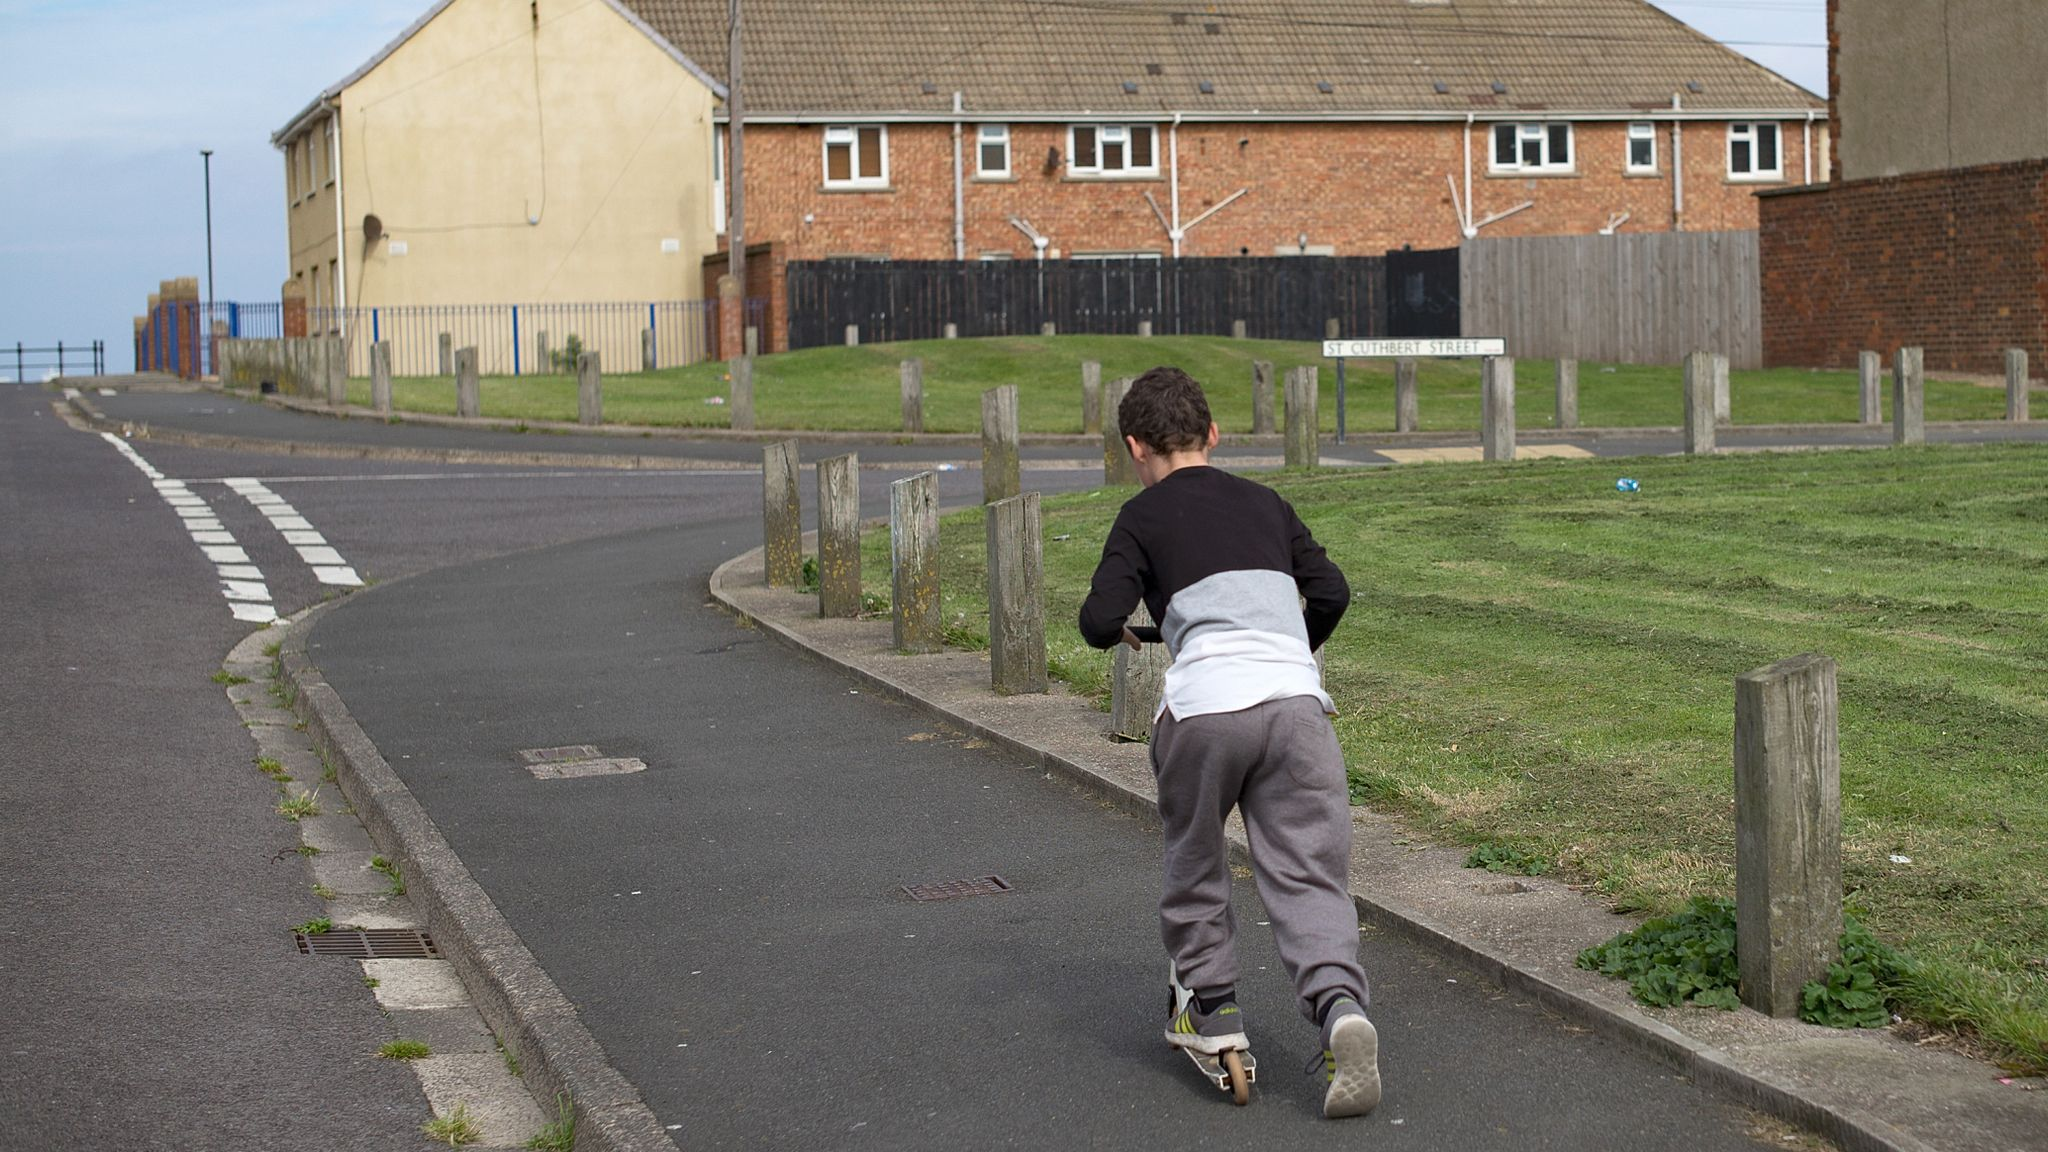 Four million children living in poverty as numbers rise, says report   UK News   Sky News